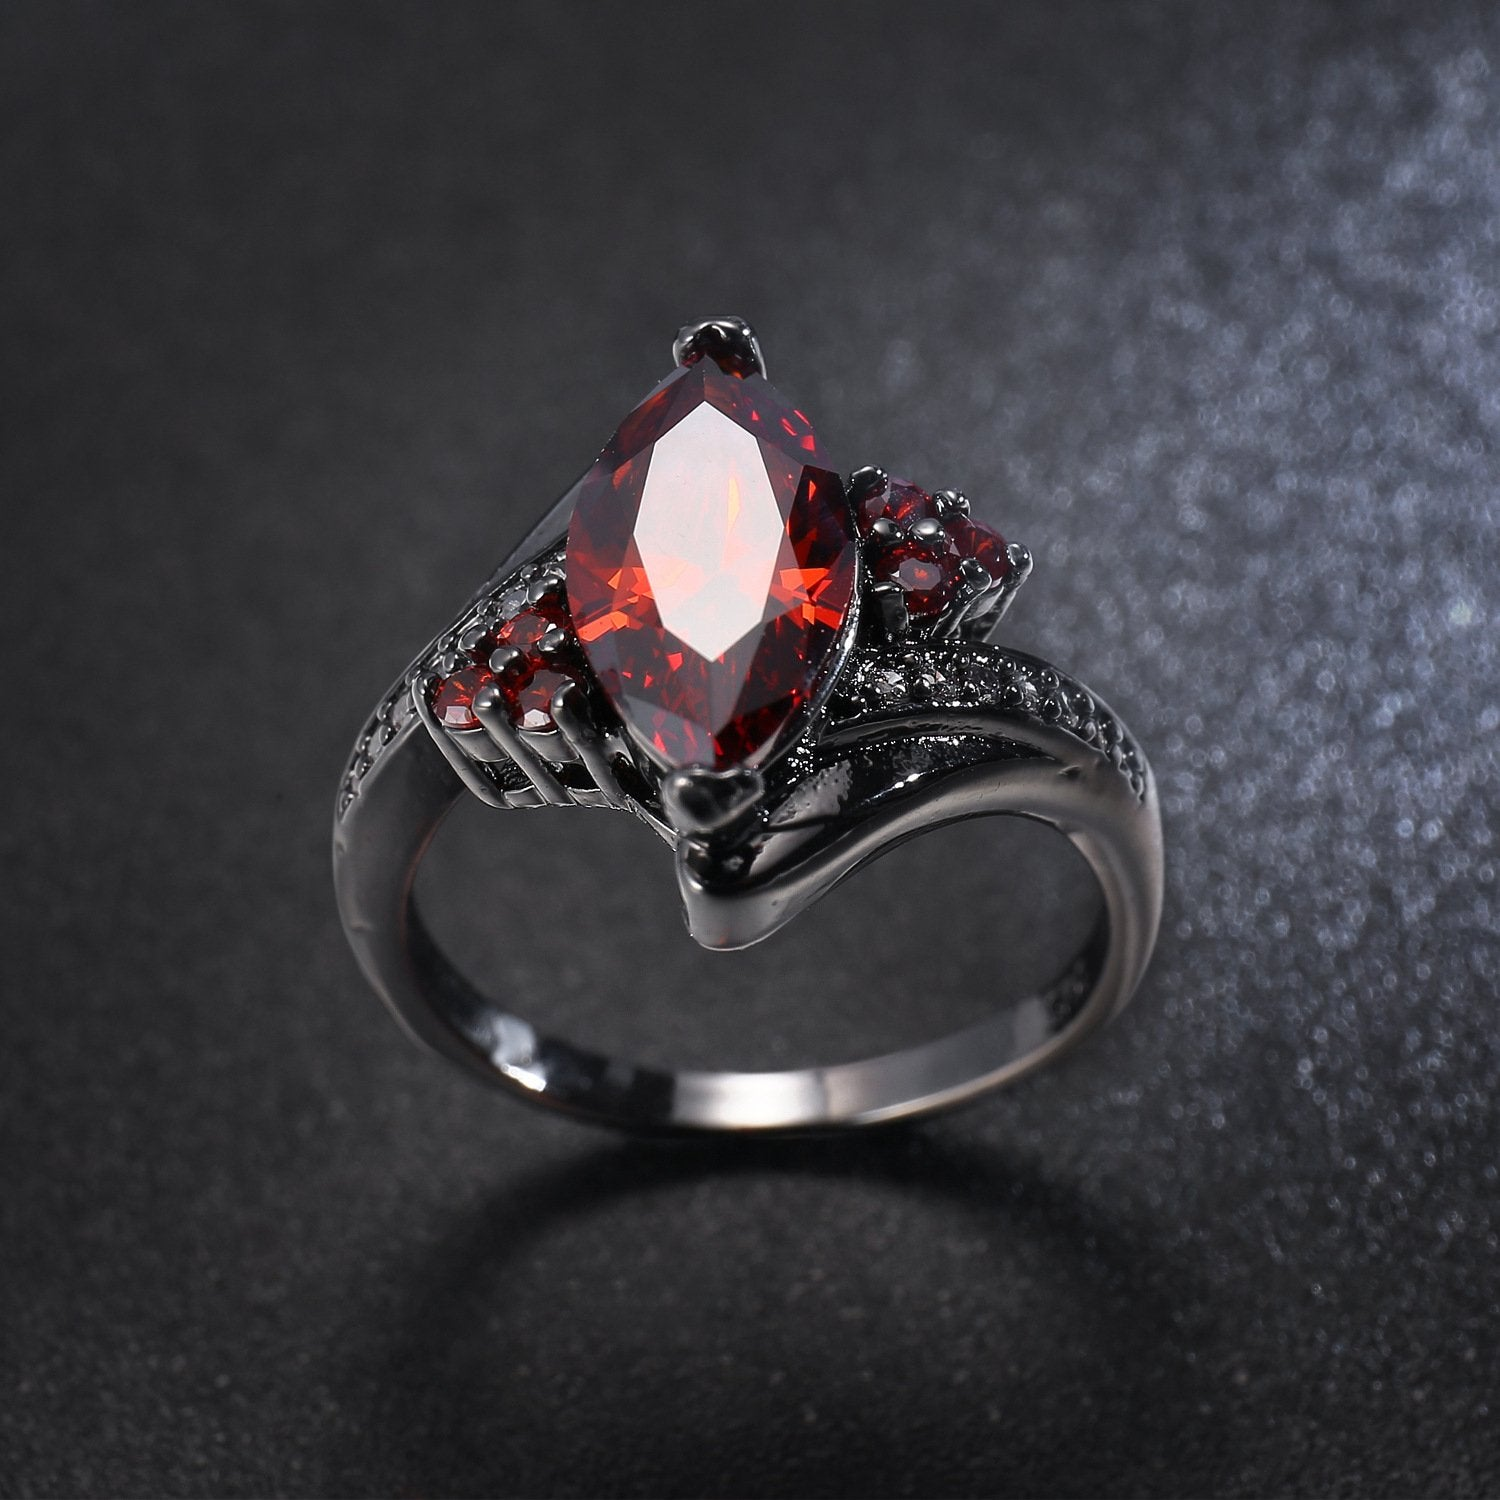 2018 new AliExpress explosion European and American gem horse eye zircon ring